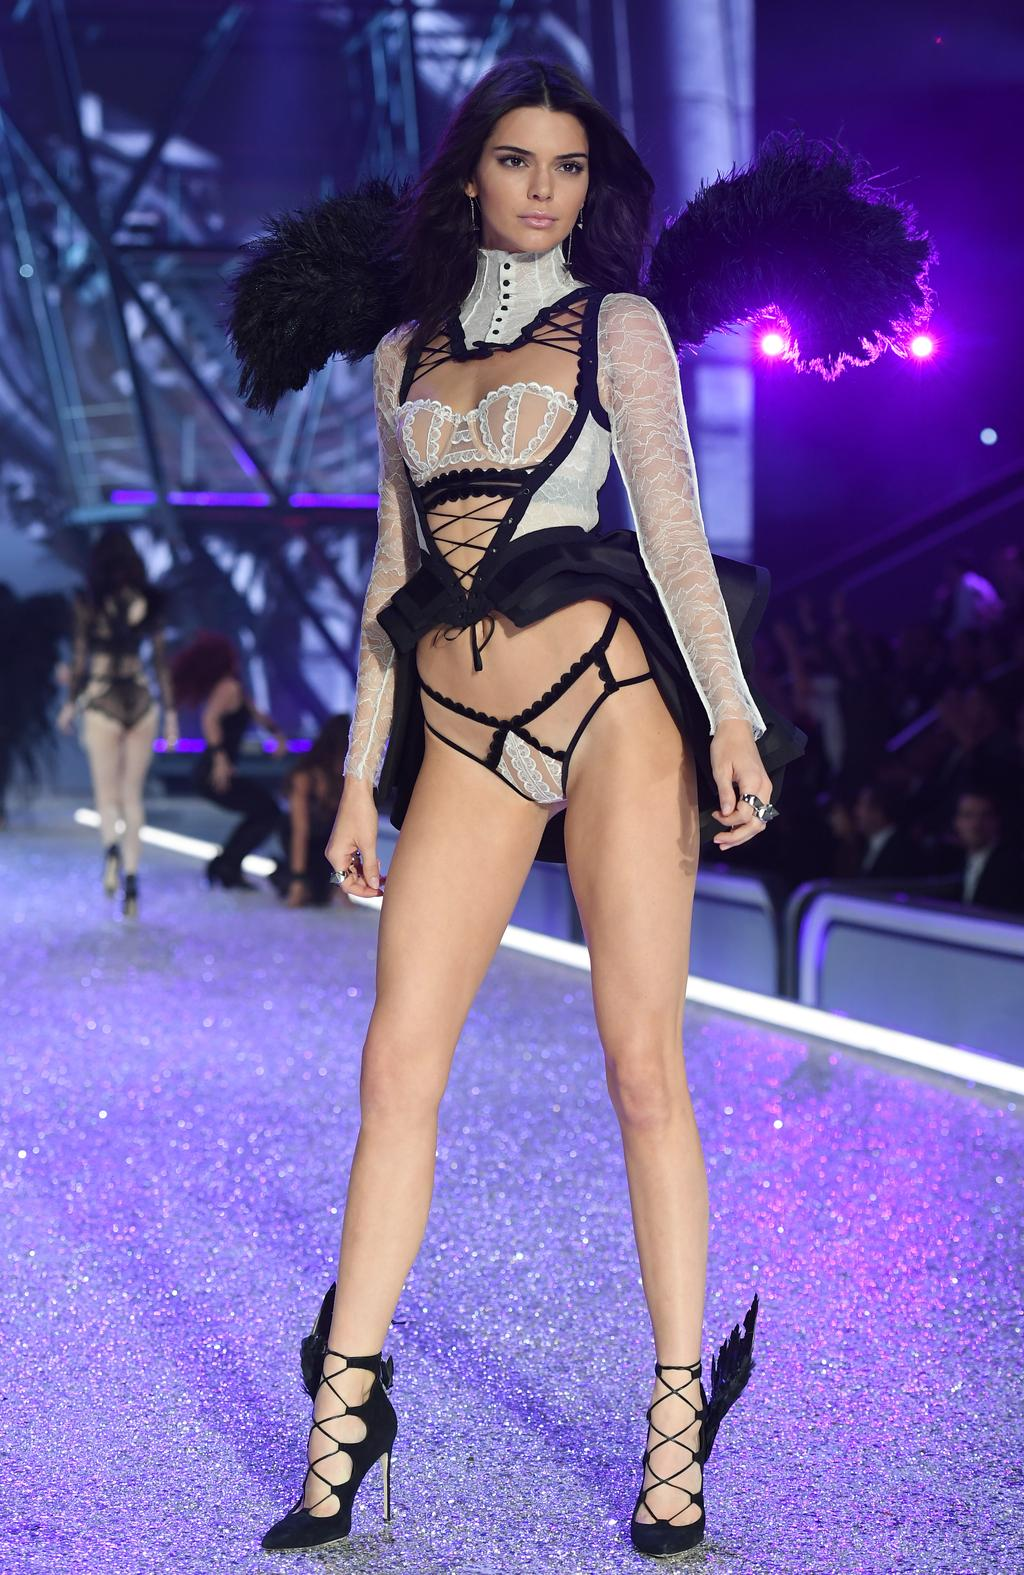 Kendall Jenner walks the runway during the 2016 Victoria's Secret Fashion Show on November 30, 2016 in Paris, France. Picture: Getty